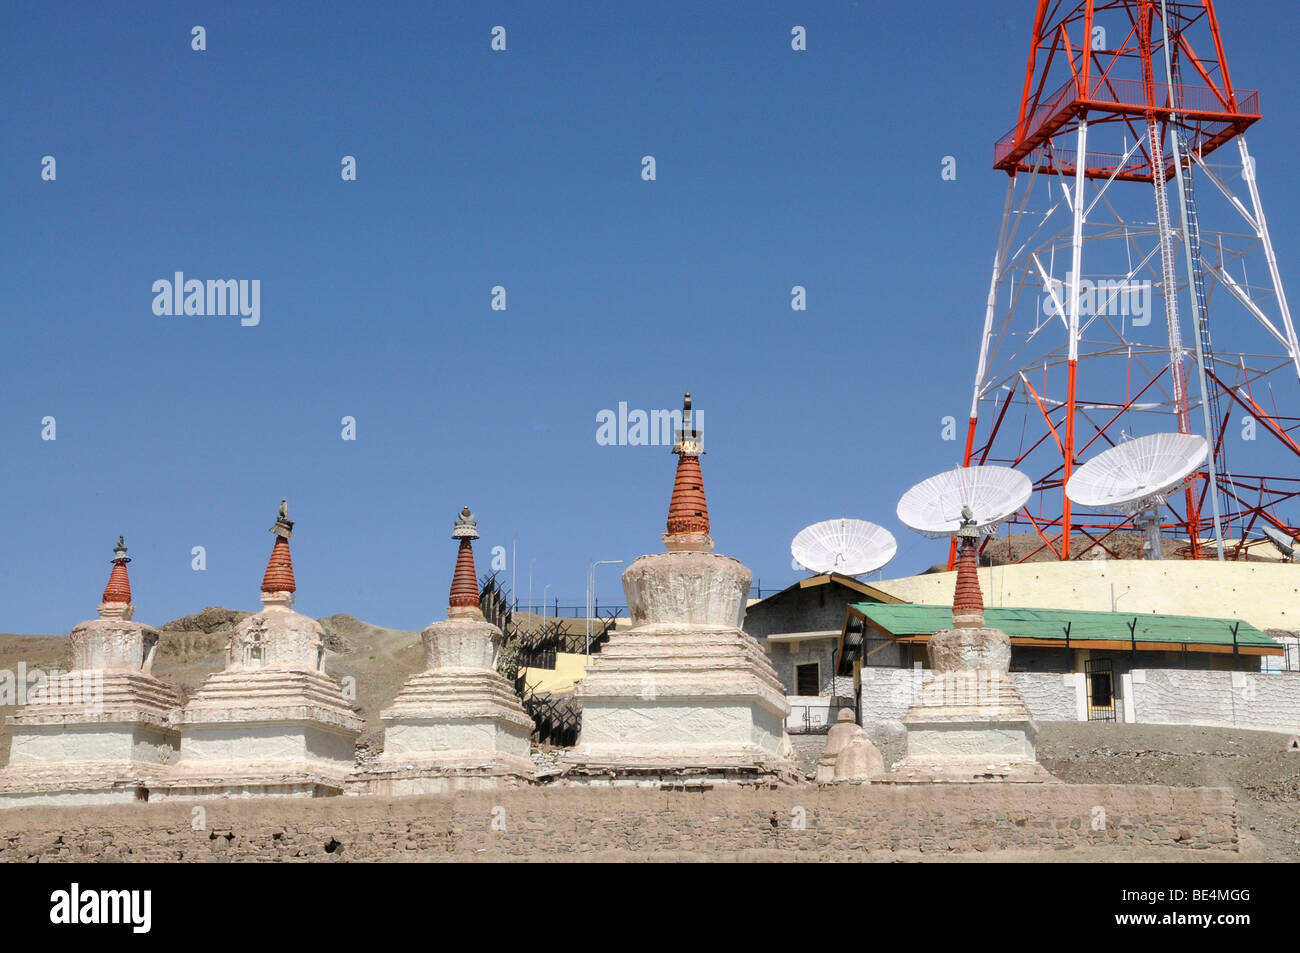 Buddhist chorten, sacred Tibetan architecture, in Stok, with satellite antennas of Ladakh's radio station, Northern - Stock Image